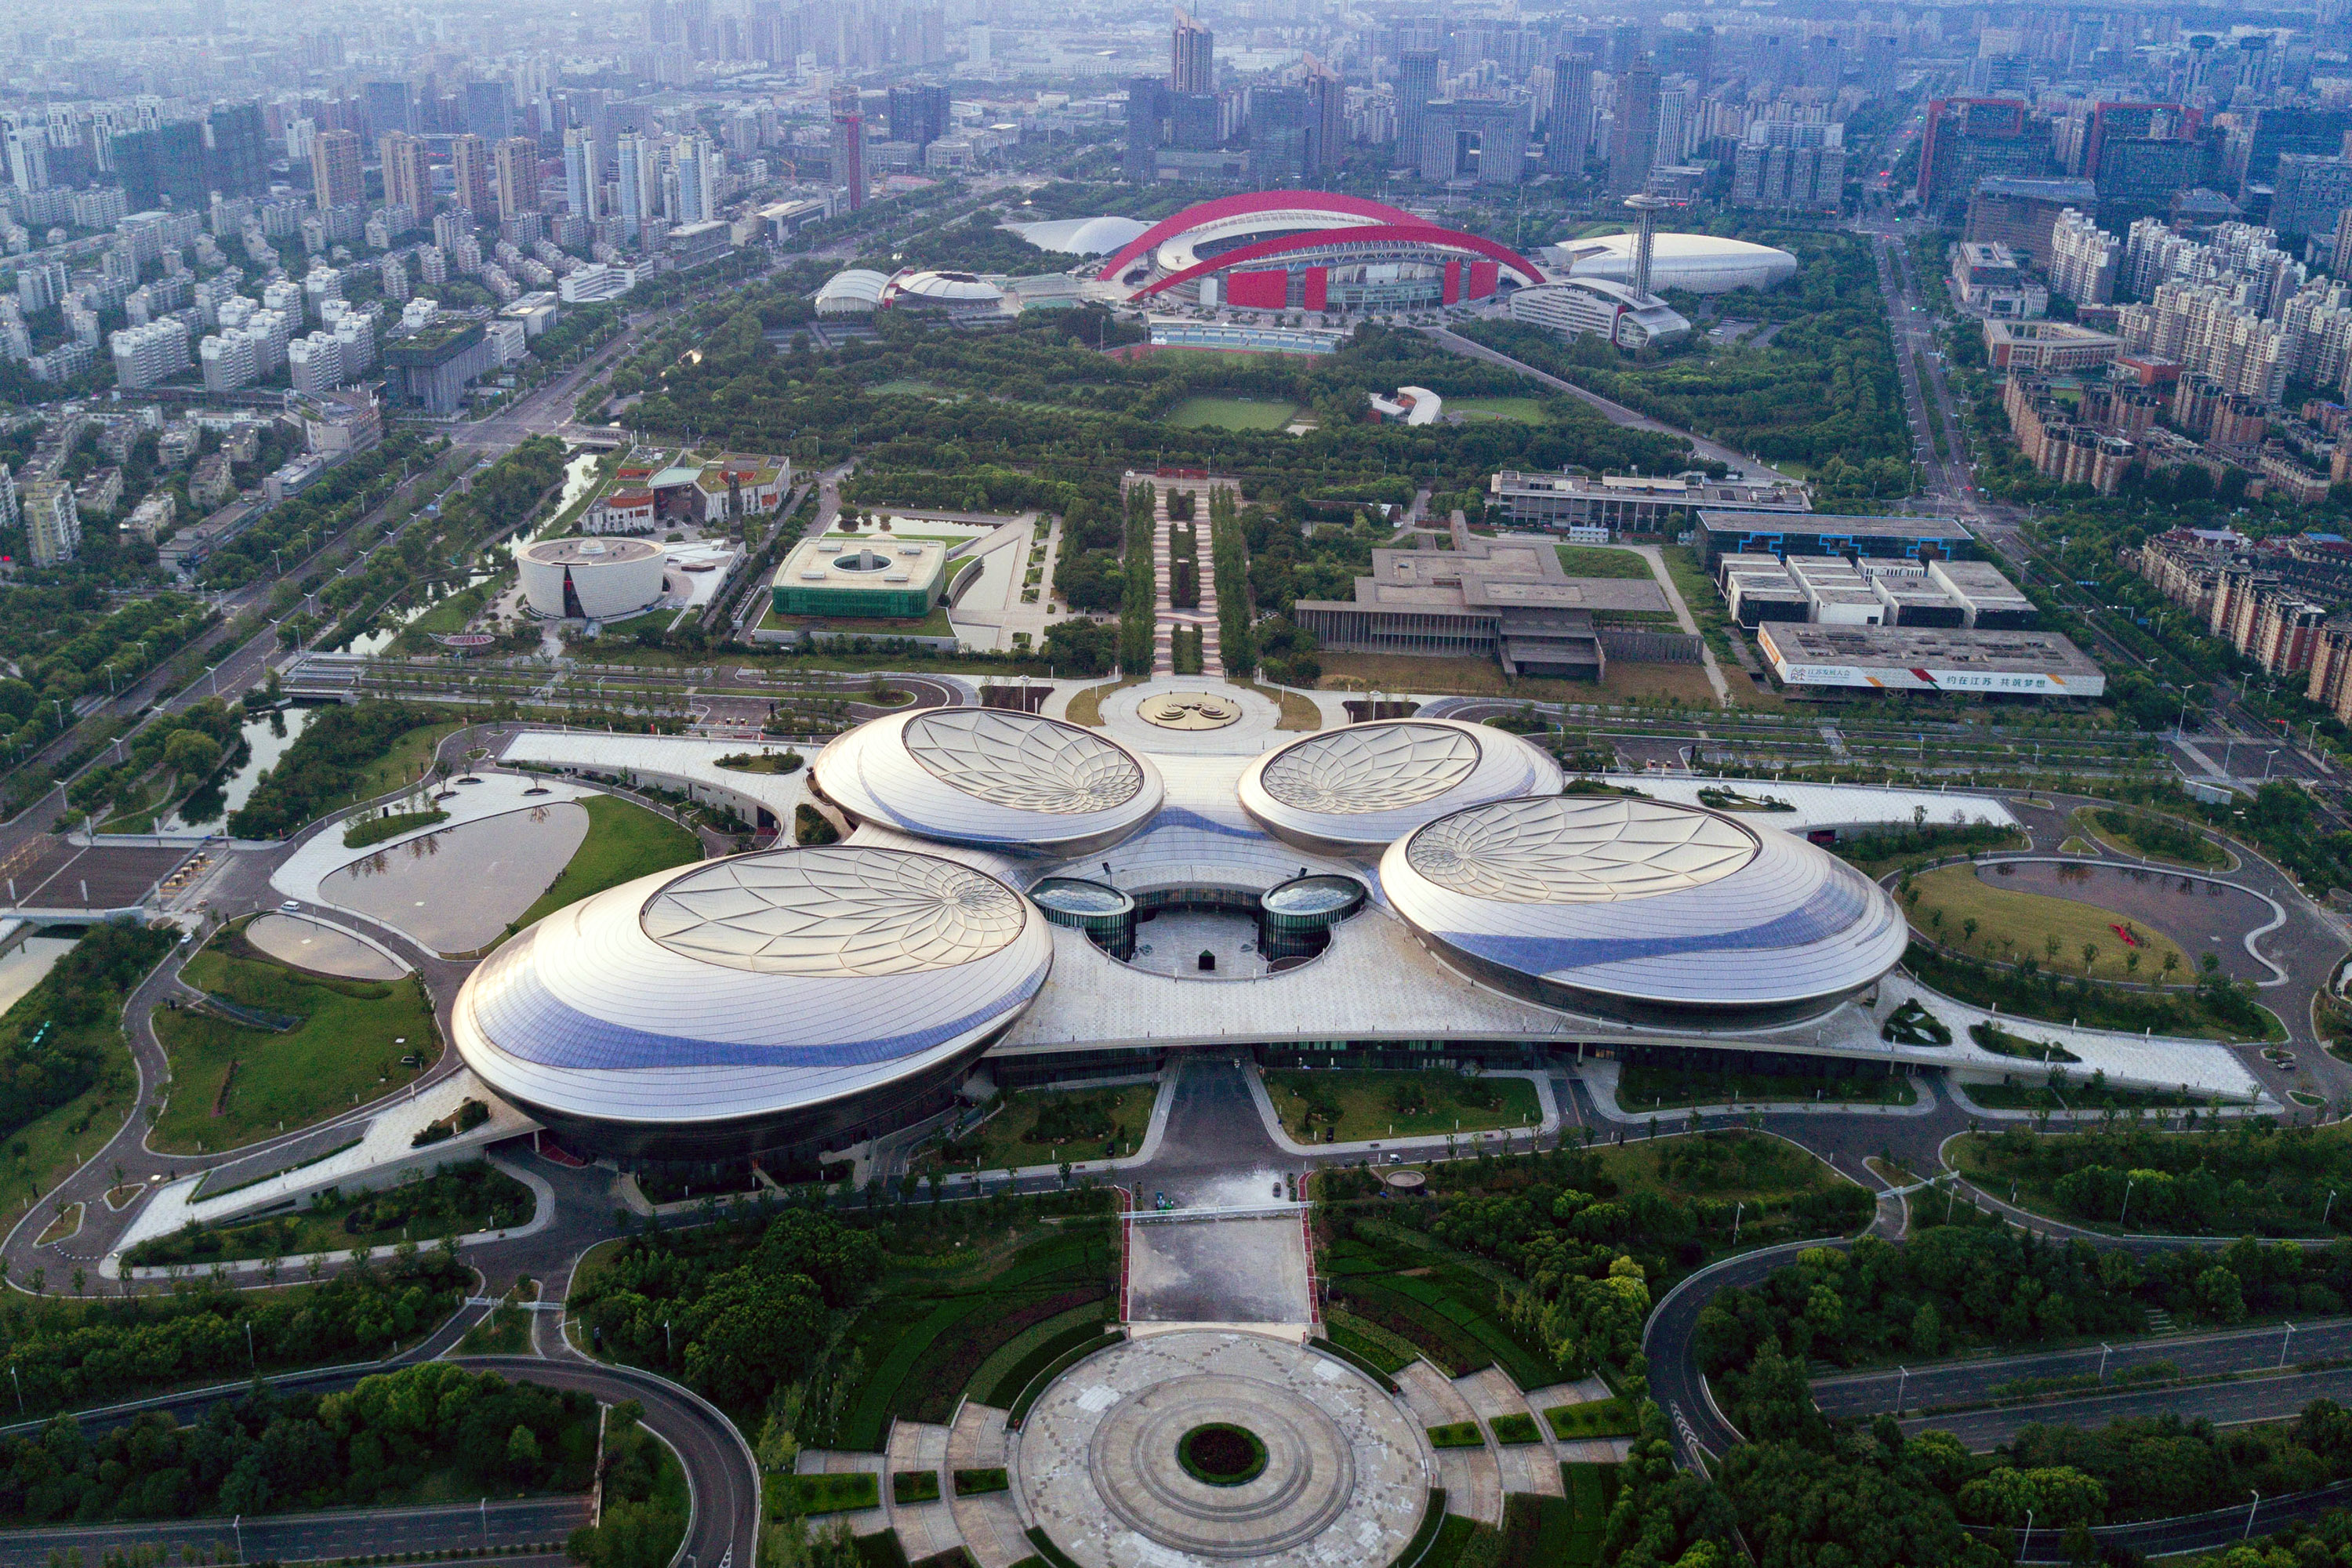 Slide 44 of 57: CAPTION: NANJING, CHINA - JULY 20: Aerial view of Jiangsu Grand Theatre on July 20, 2017 in Nanjing, Jiangsu Province of China. As the largest performing arts centre project in China to open in the past 10 years, the theatre includes six performing halls: 2,300-seat opera house, 1,500-seat concert hall, 1,000-seat drama theatre, 3,000-seat conference hall and two small conference halls. A press conference was held on Thursday to announce that Nanjing Grand Theatre is to open on August 15 this year. (Photo by Yang Bo/CHINA NEWS SERVICE/VCG via Getty Images)